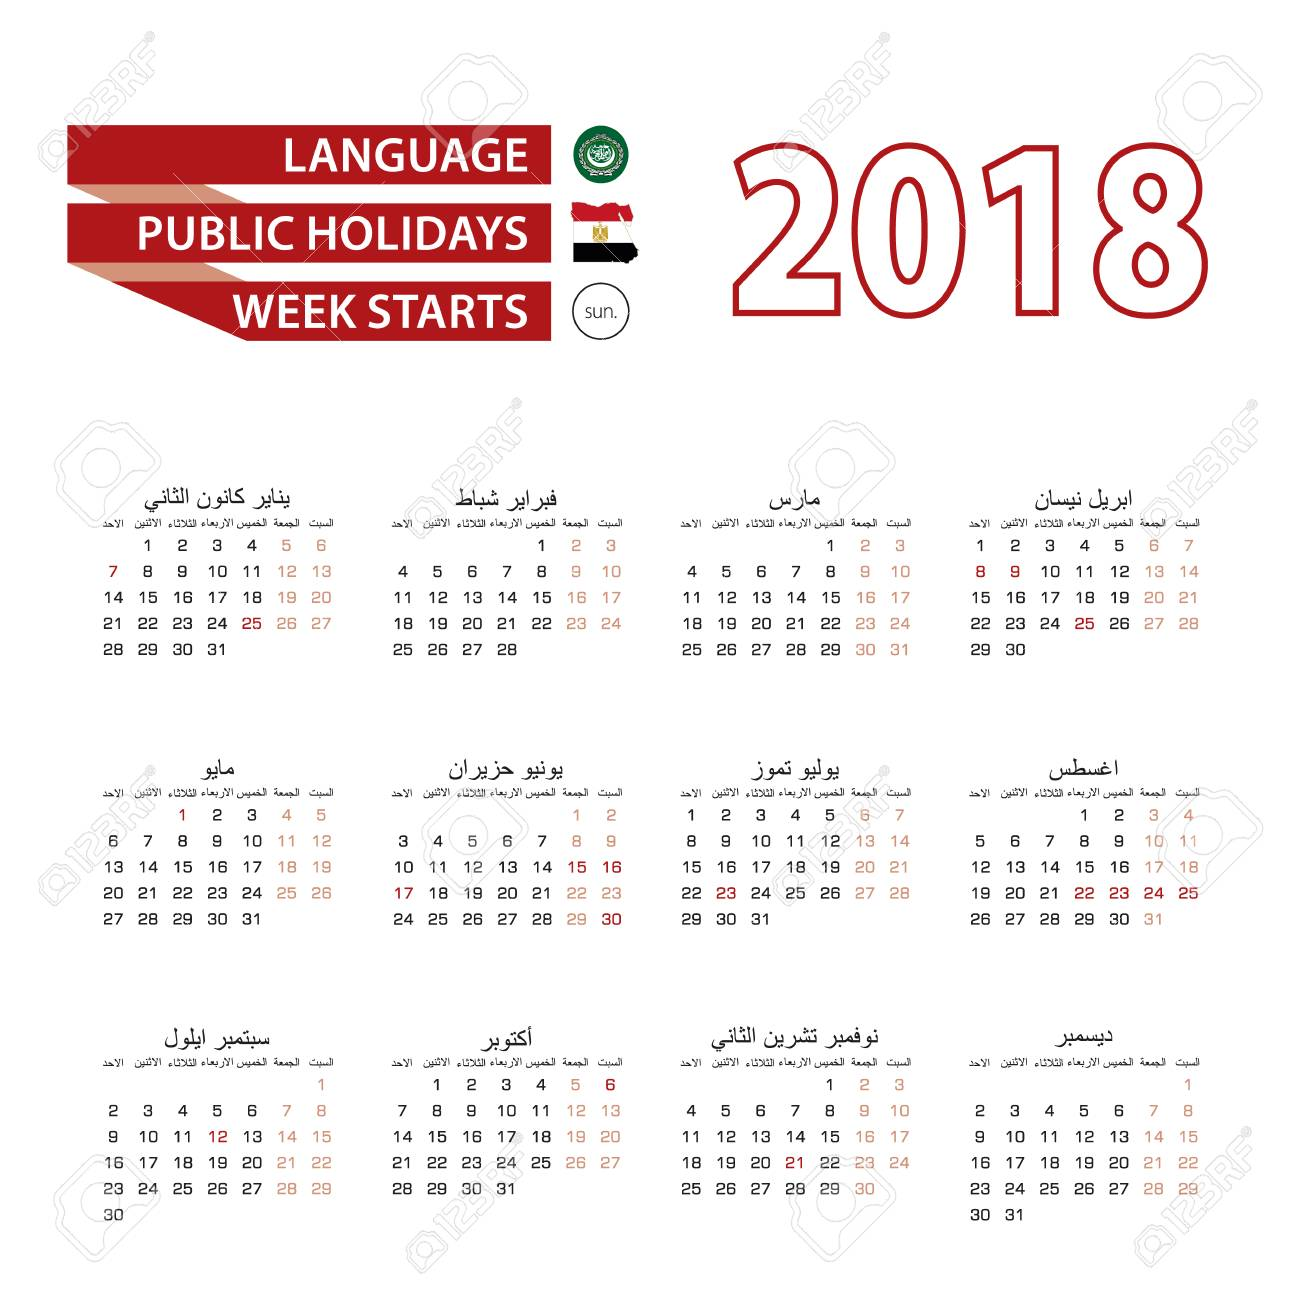 Calendar Holidays.Calendar 2018 In Arabic Language With Public Holidays The Country